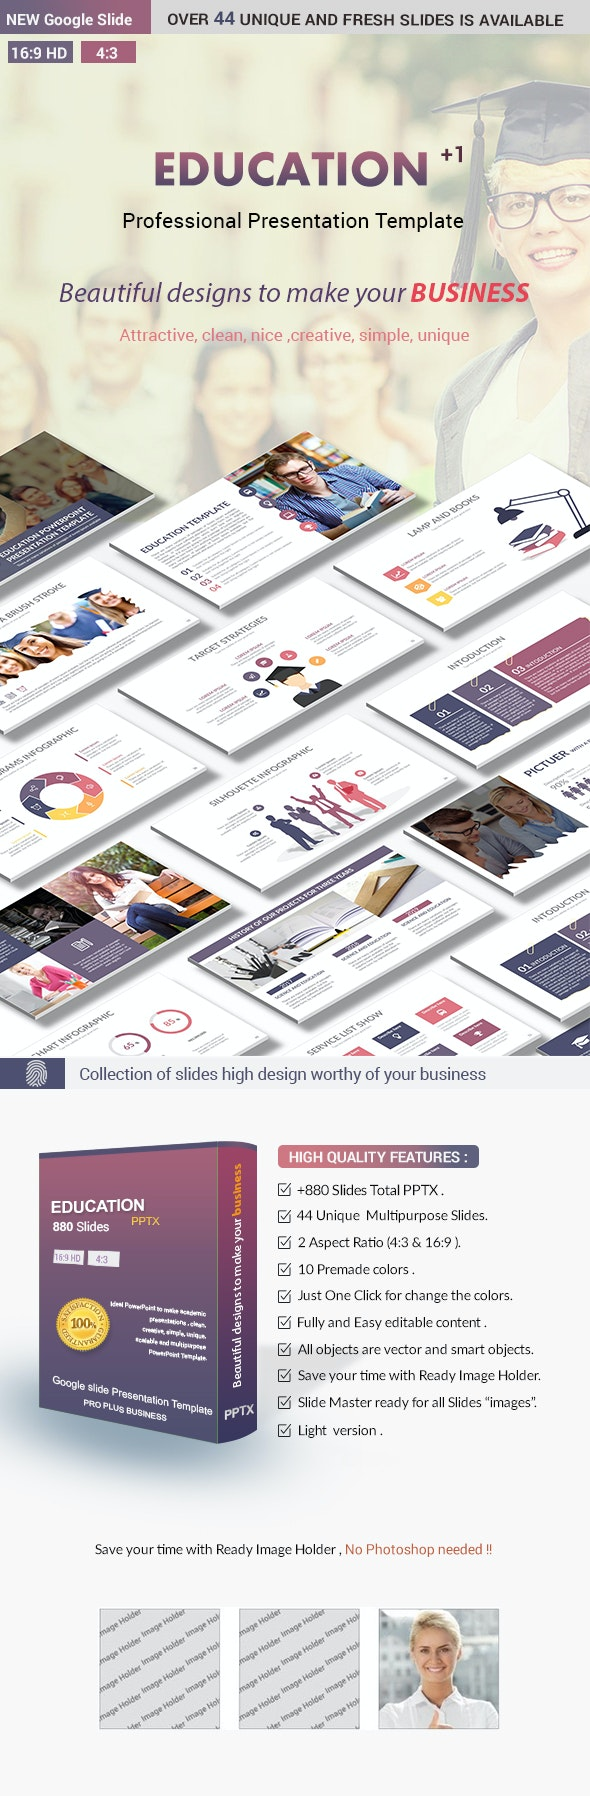 Education Google slides Presentation Template - Google Slides Presentation Templates